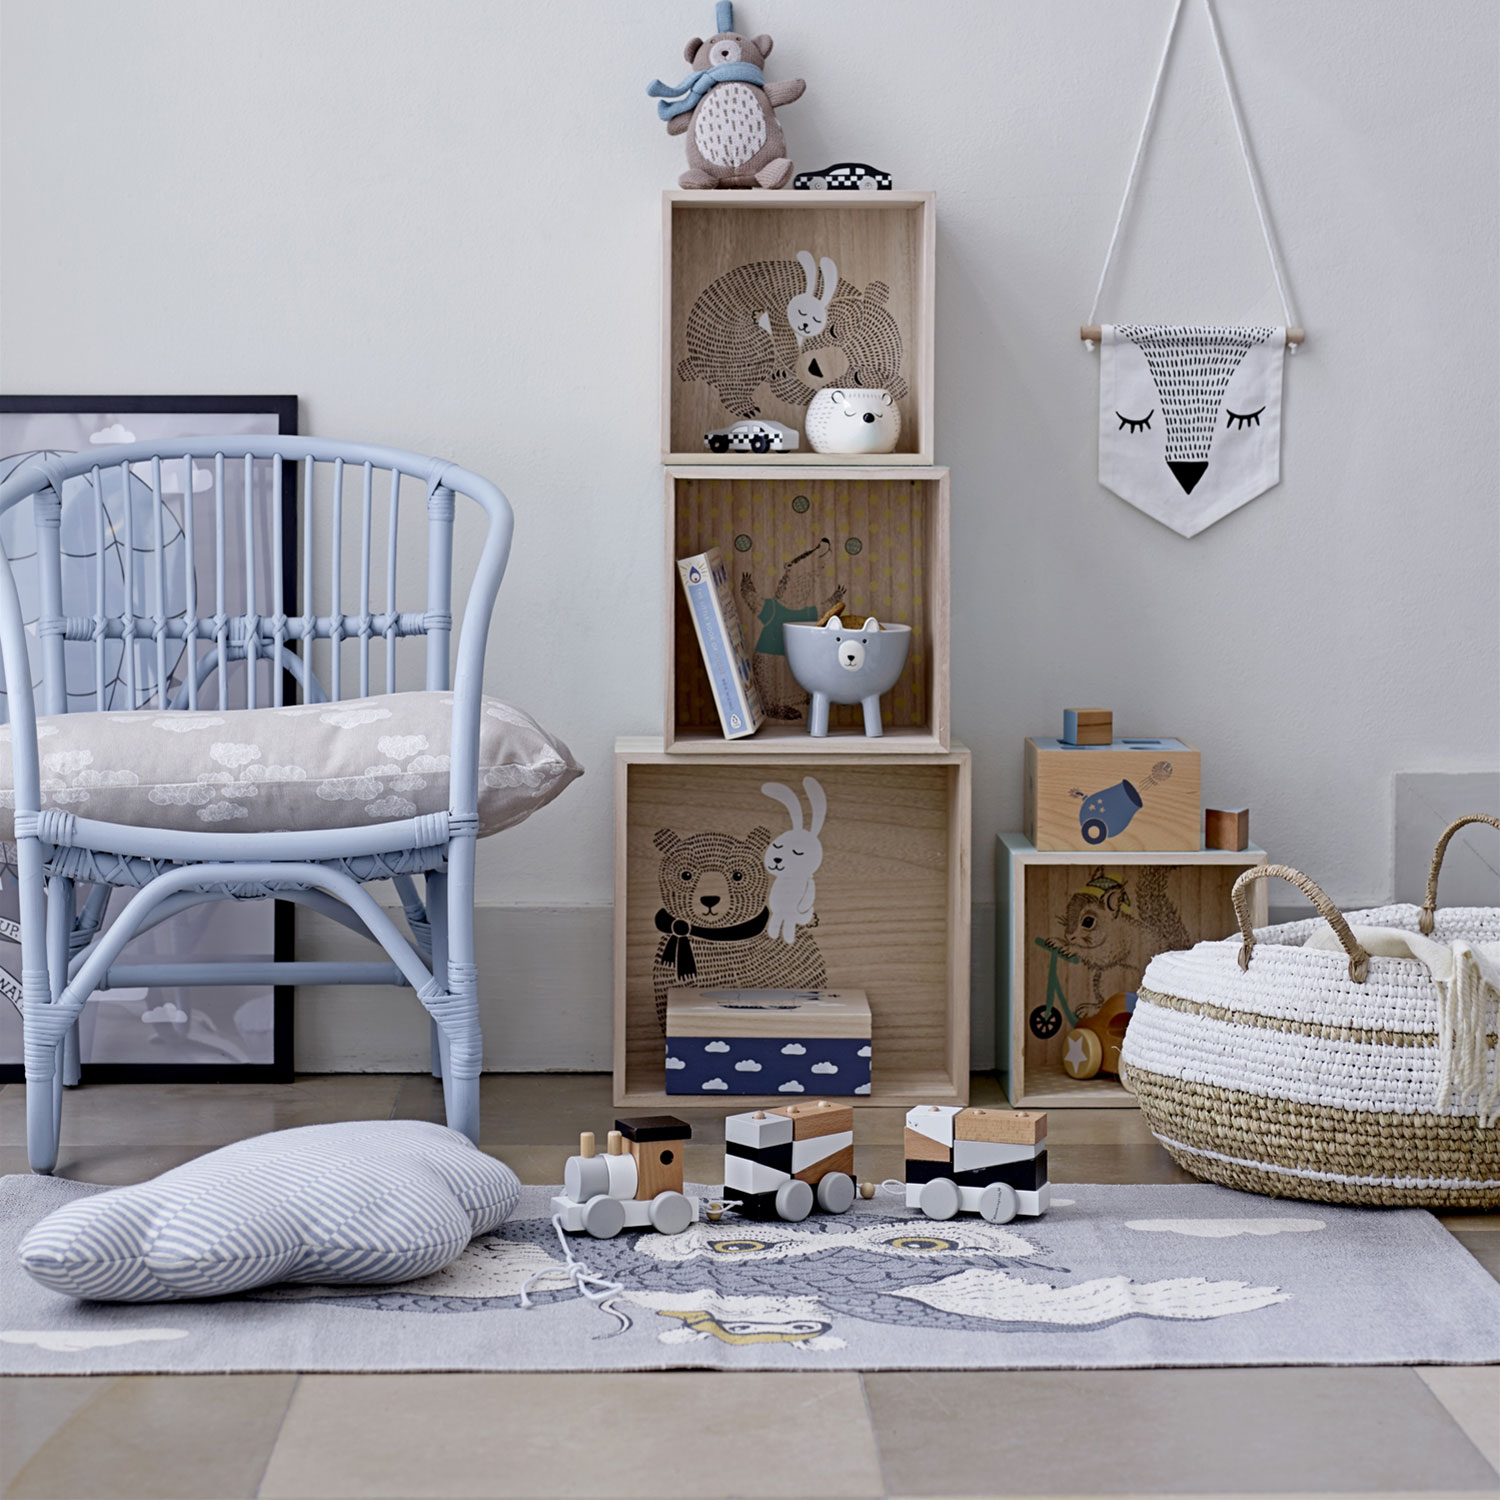 Hot Air Balloon Friends poster 50x70, grå